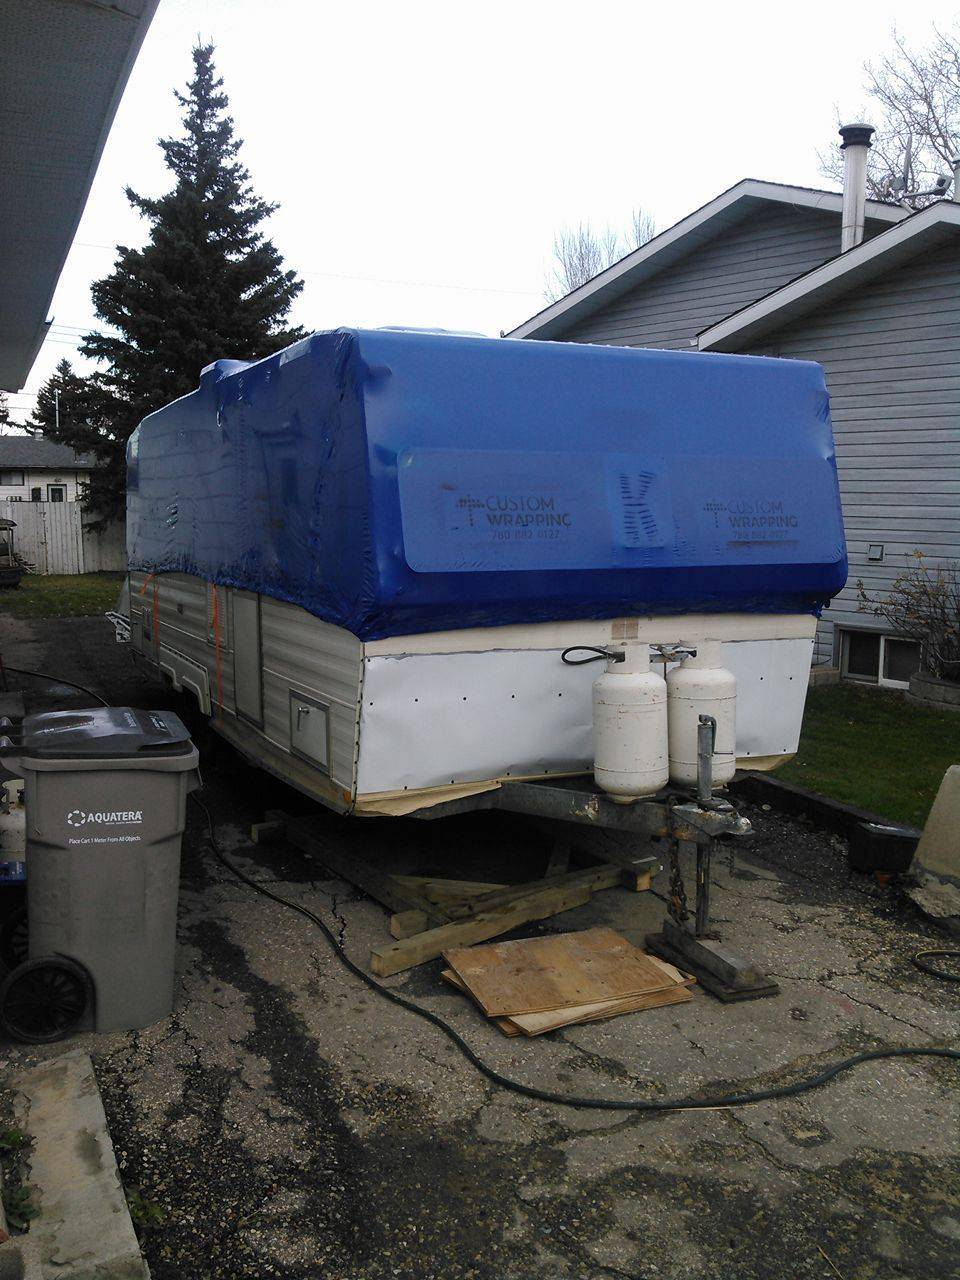 the best way to keep a trailer in good shape!